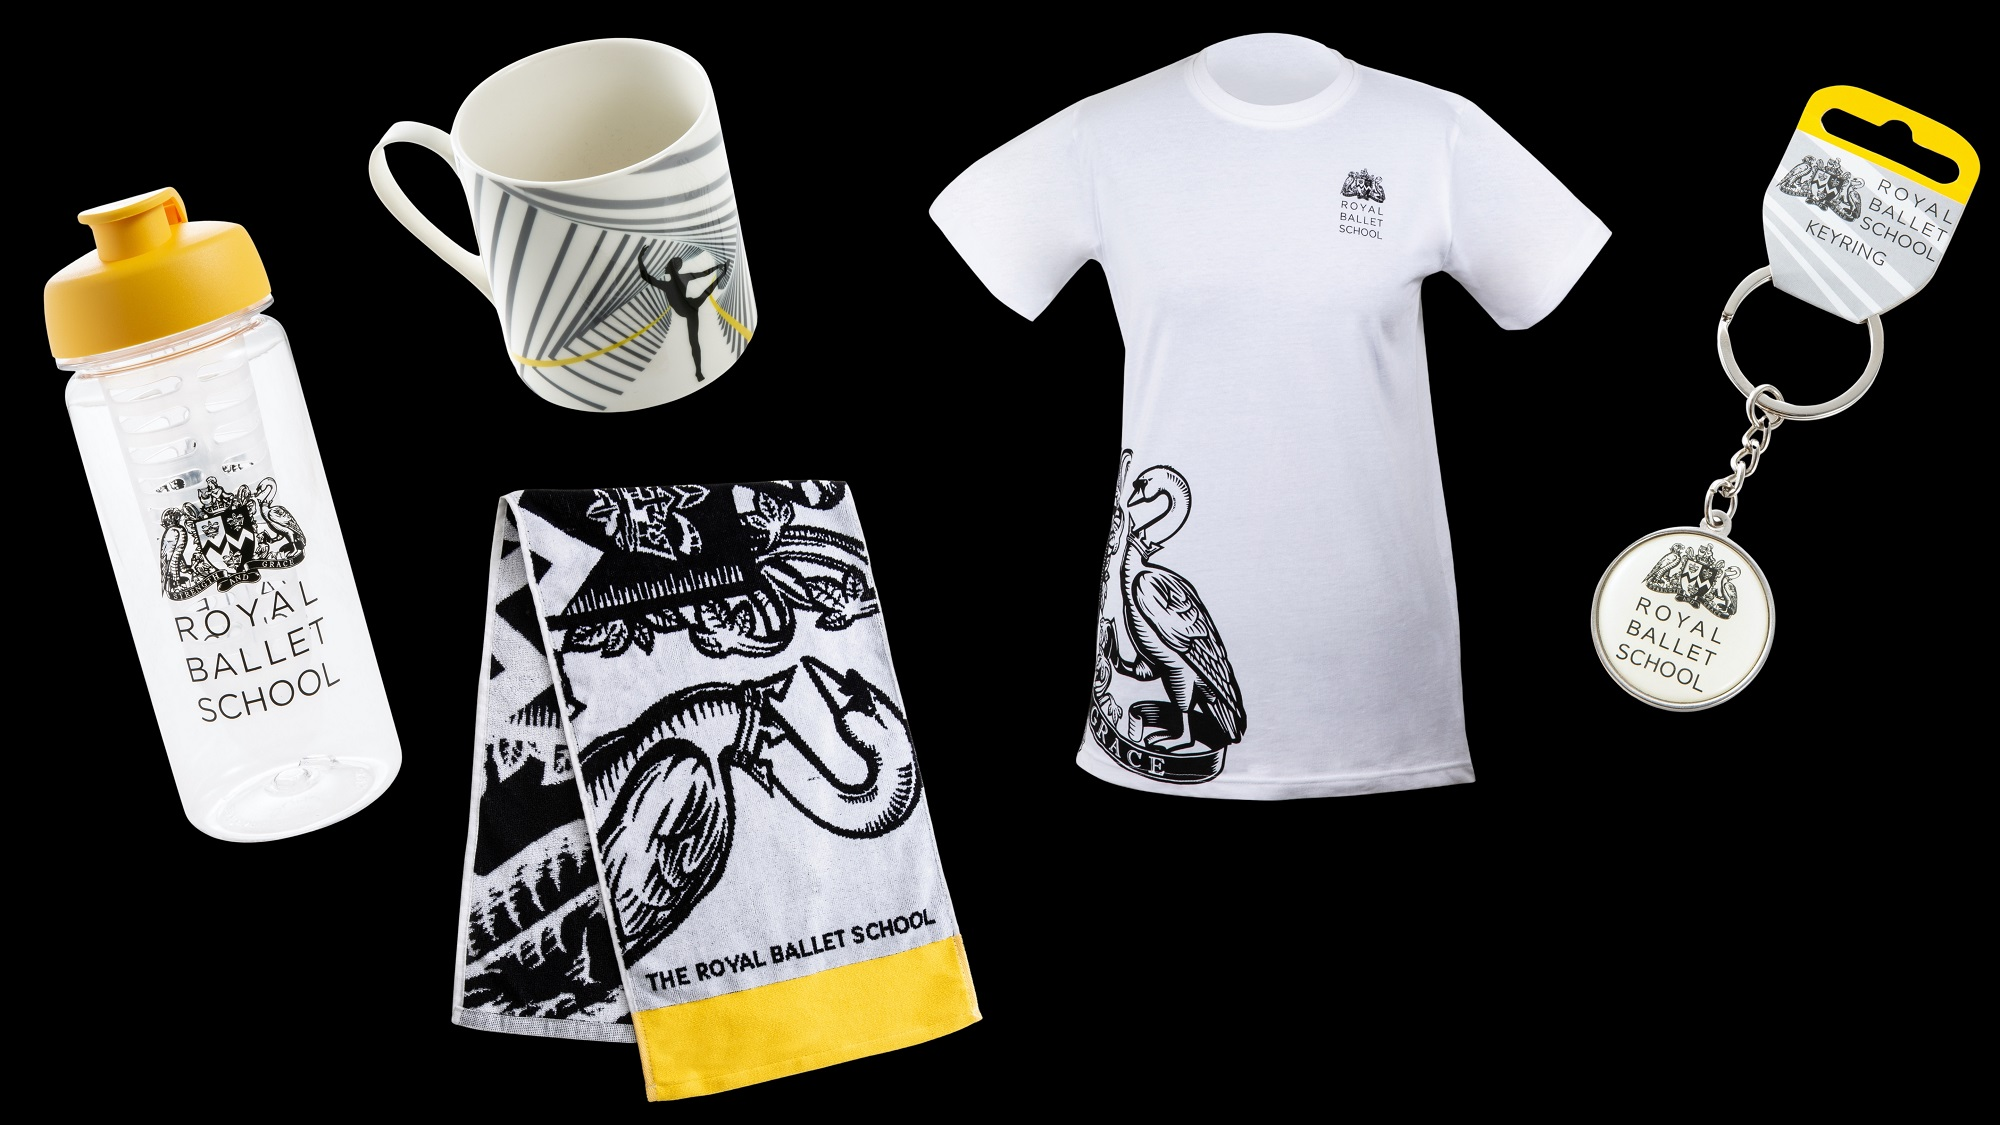 Royal Ballet School merchandise